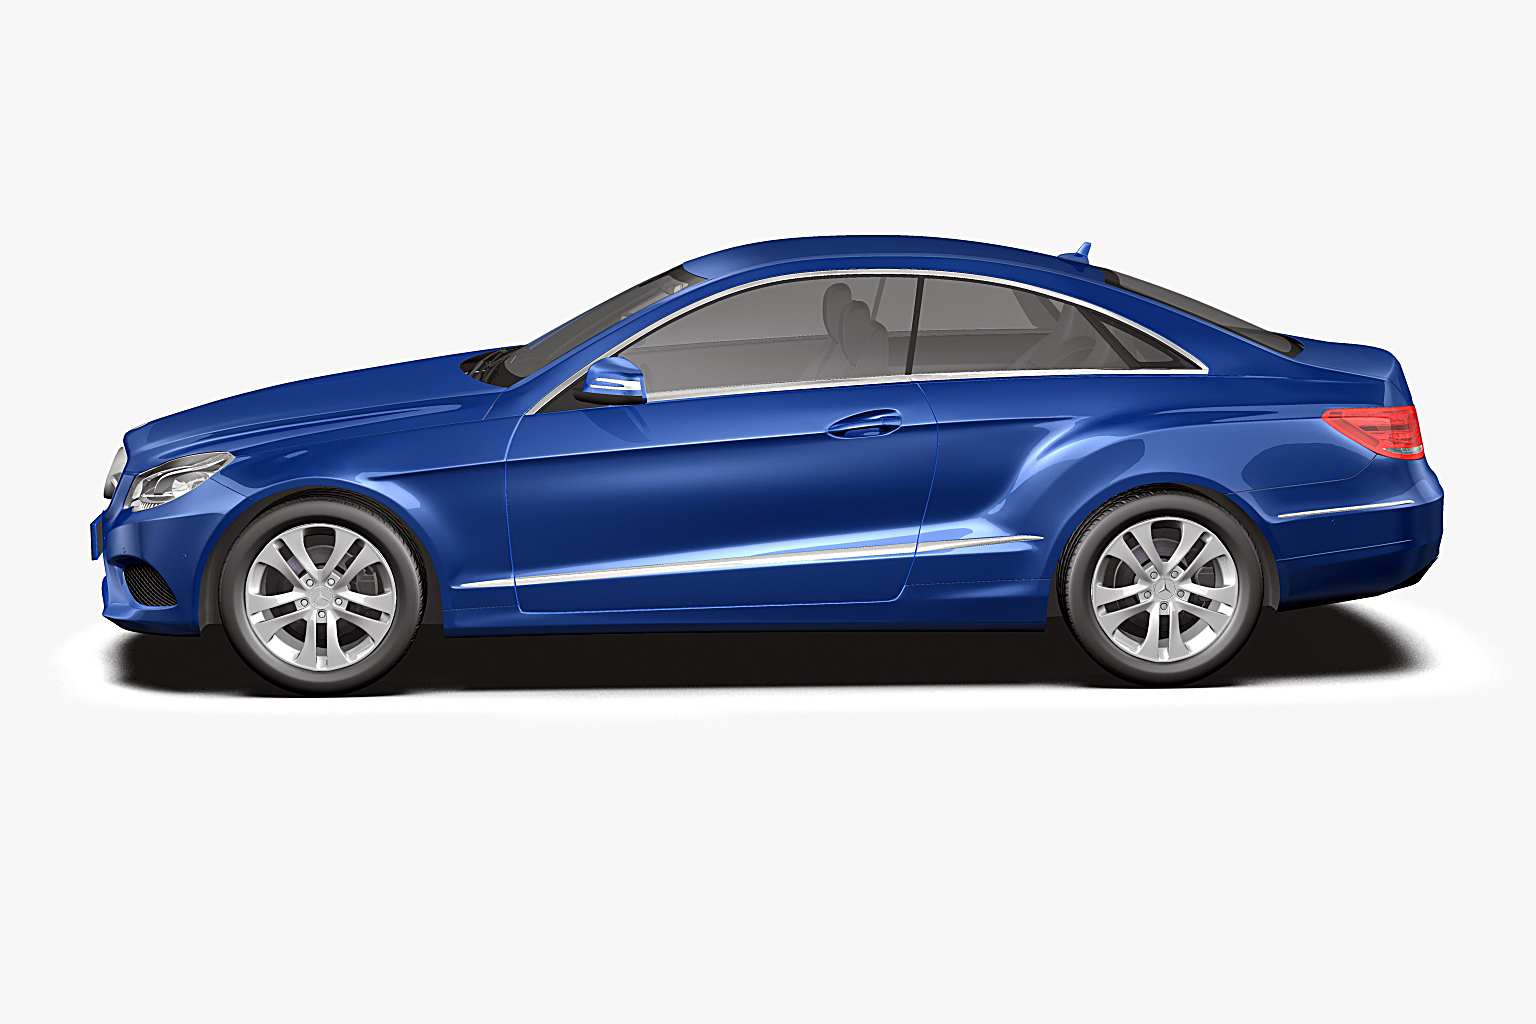 2014 Mercedes Benz E Class Coupe 3d Model Max Obj 3ds Fbx